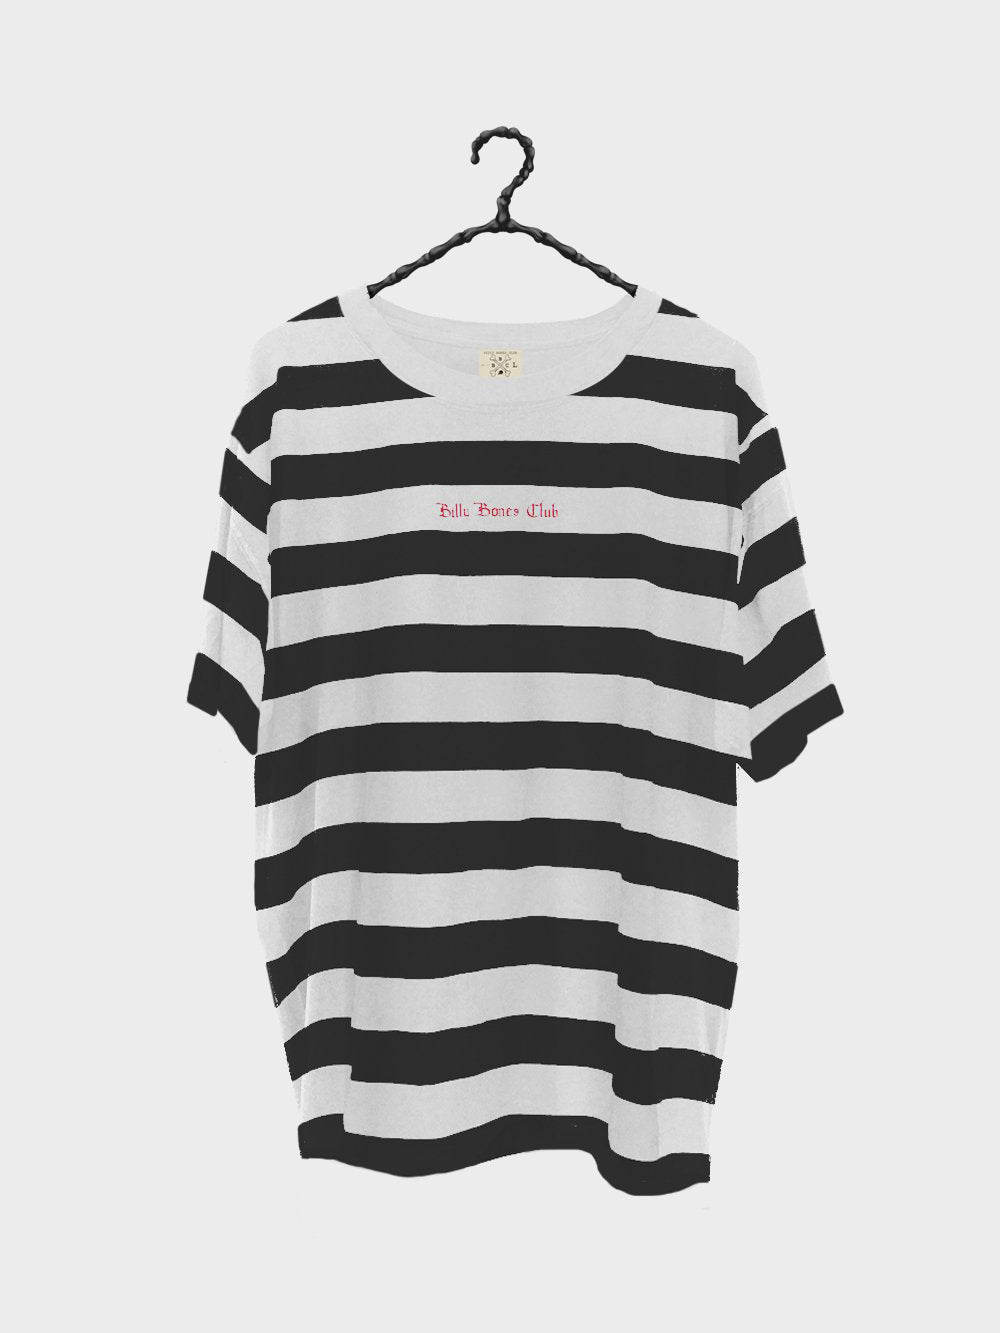 White Stripes Tee - Black and White